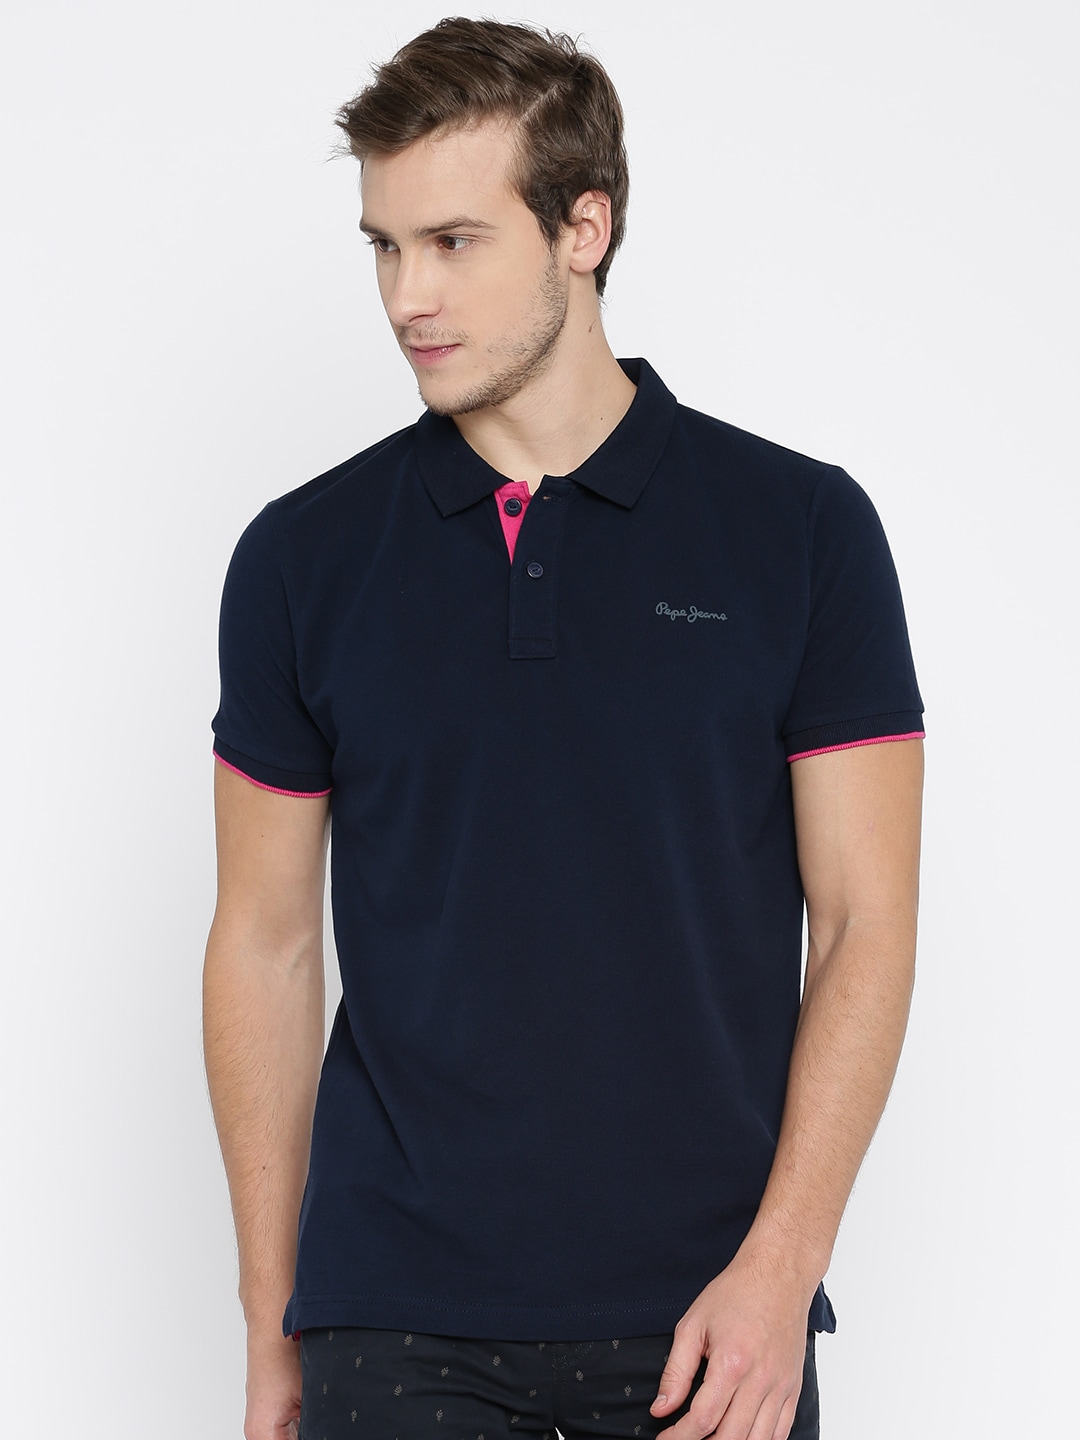 Black t shirt navy jeans - Buy Pepe Jeans Men Black Solid Polo Collar T Shirt Tshirts For Men Myntra